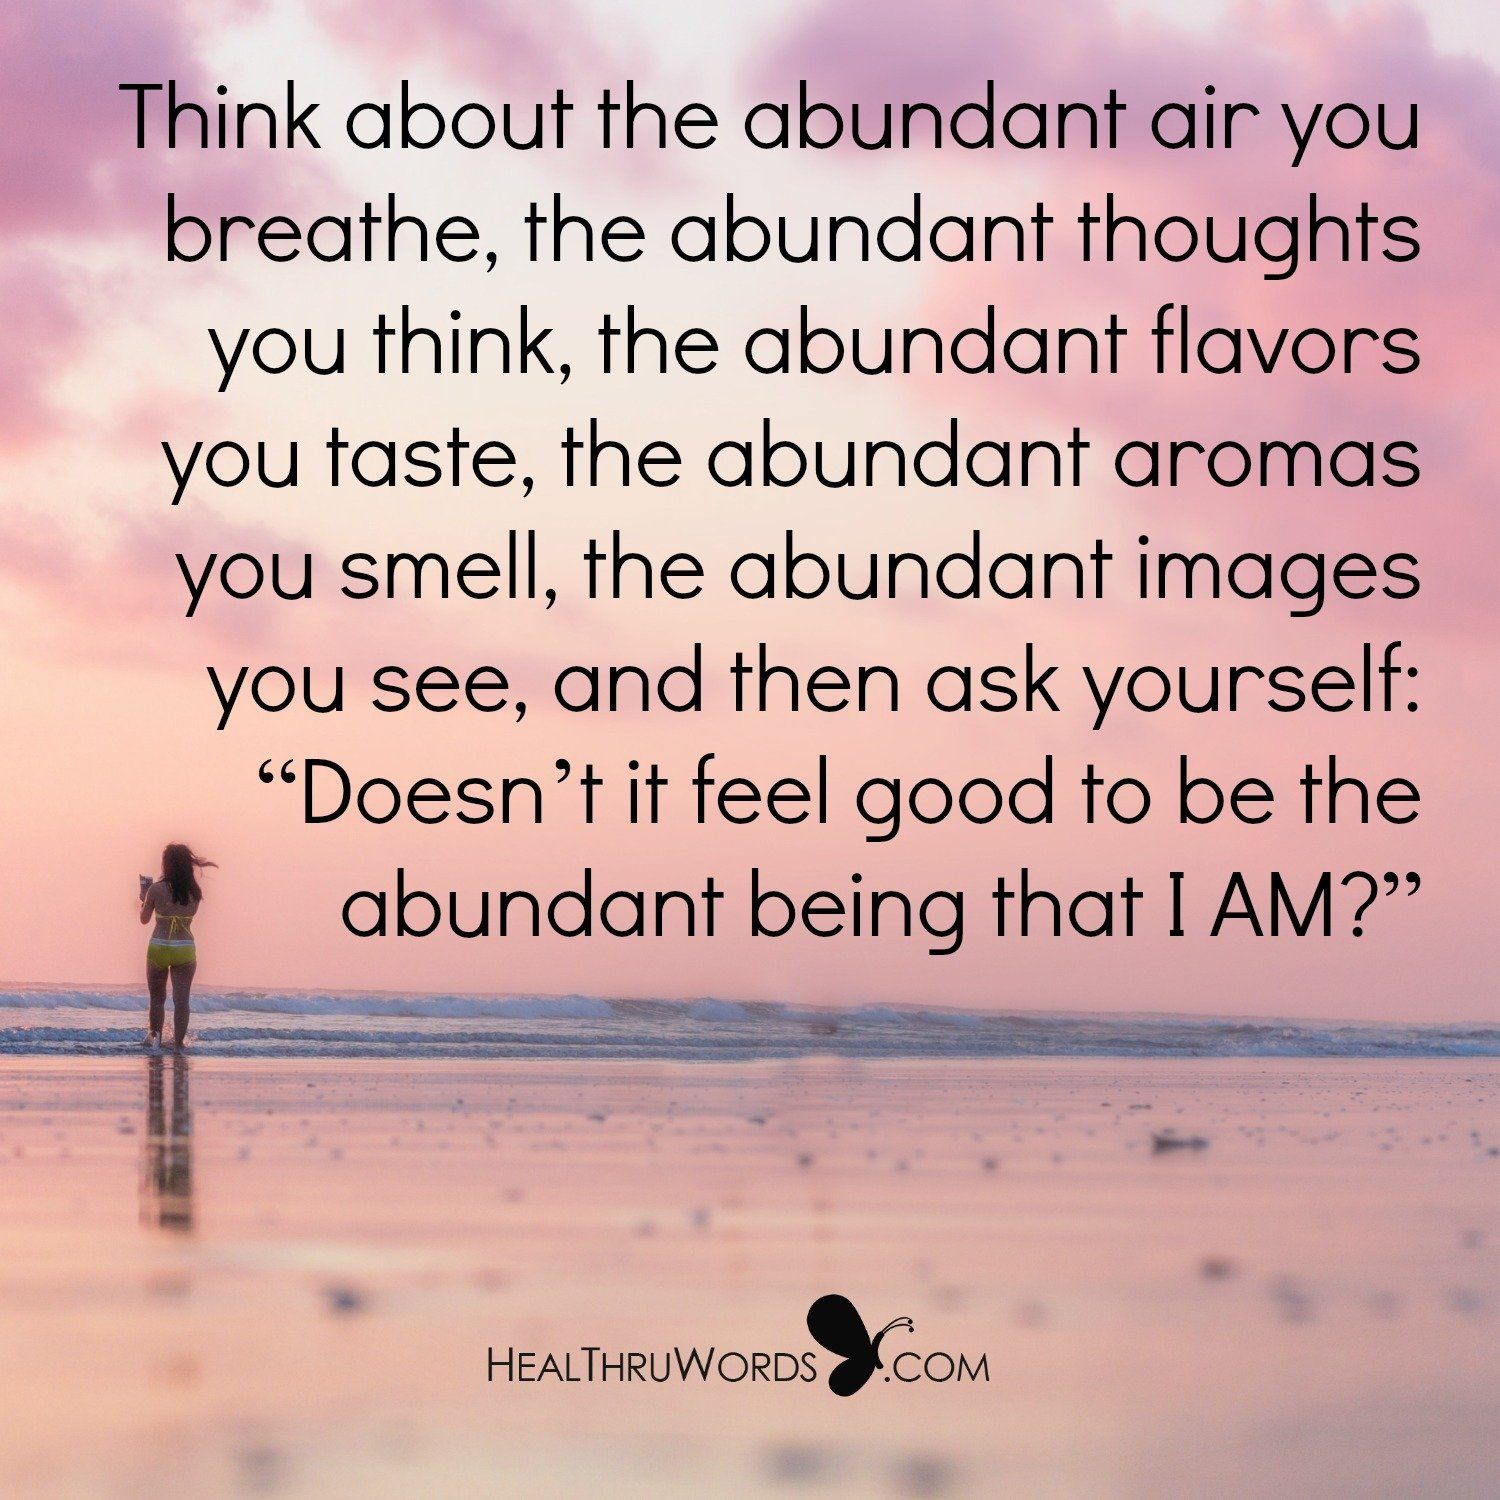 Inspirational Image: Being Abundantly